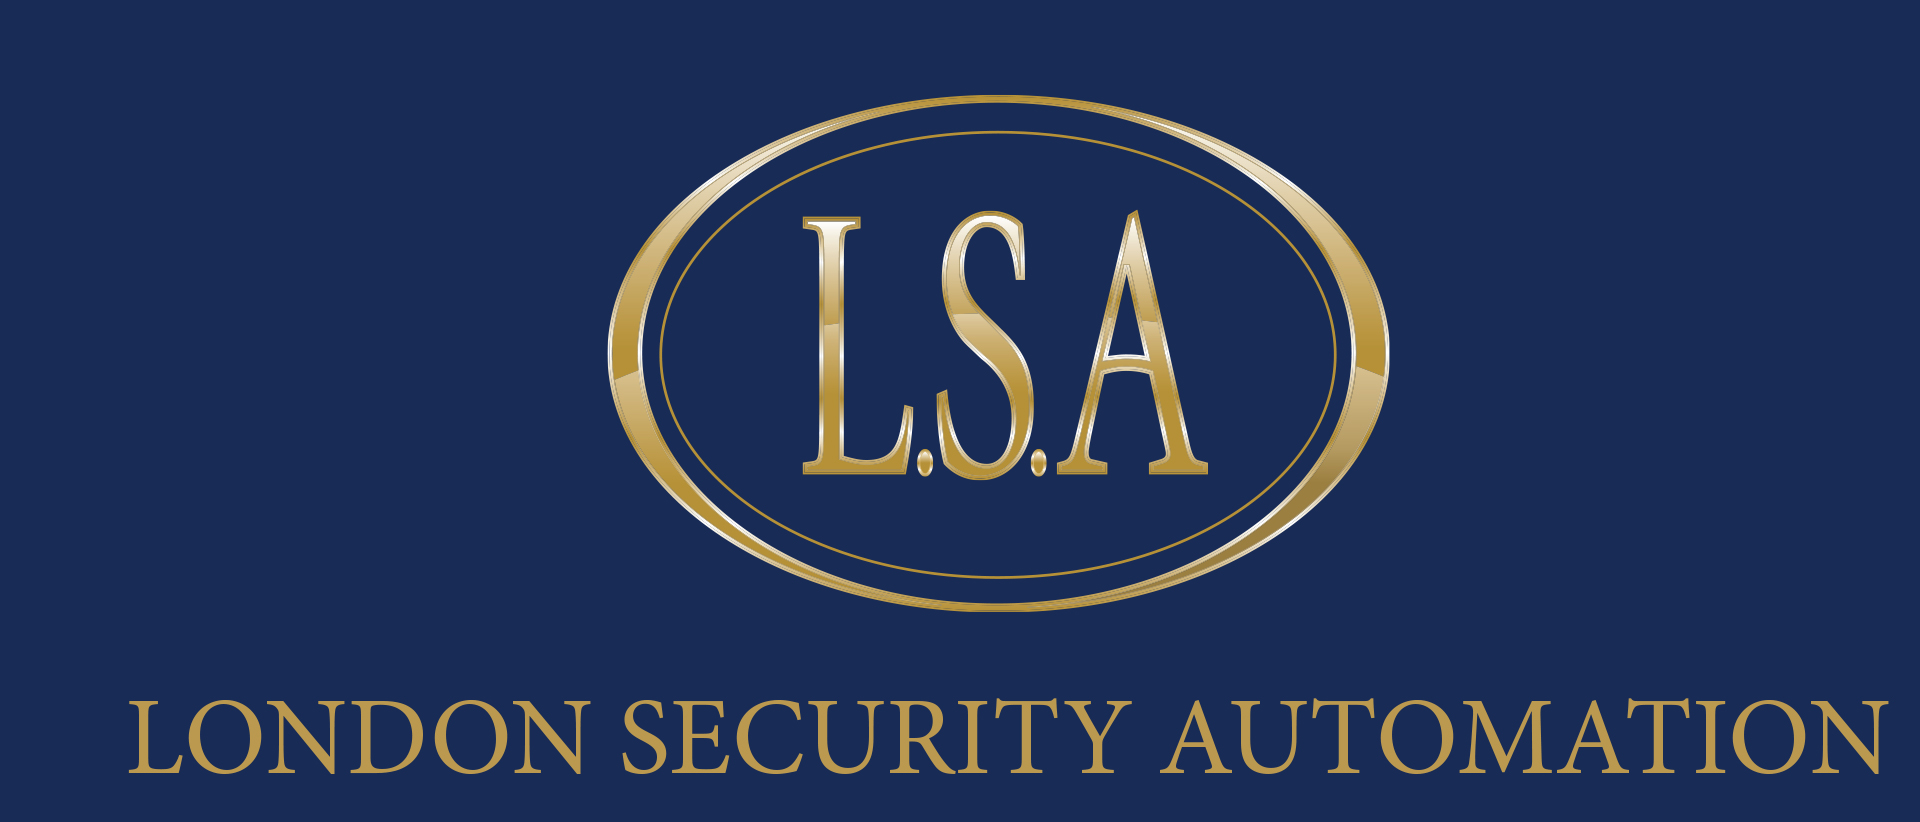 London Security Automation Logo